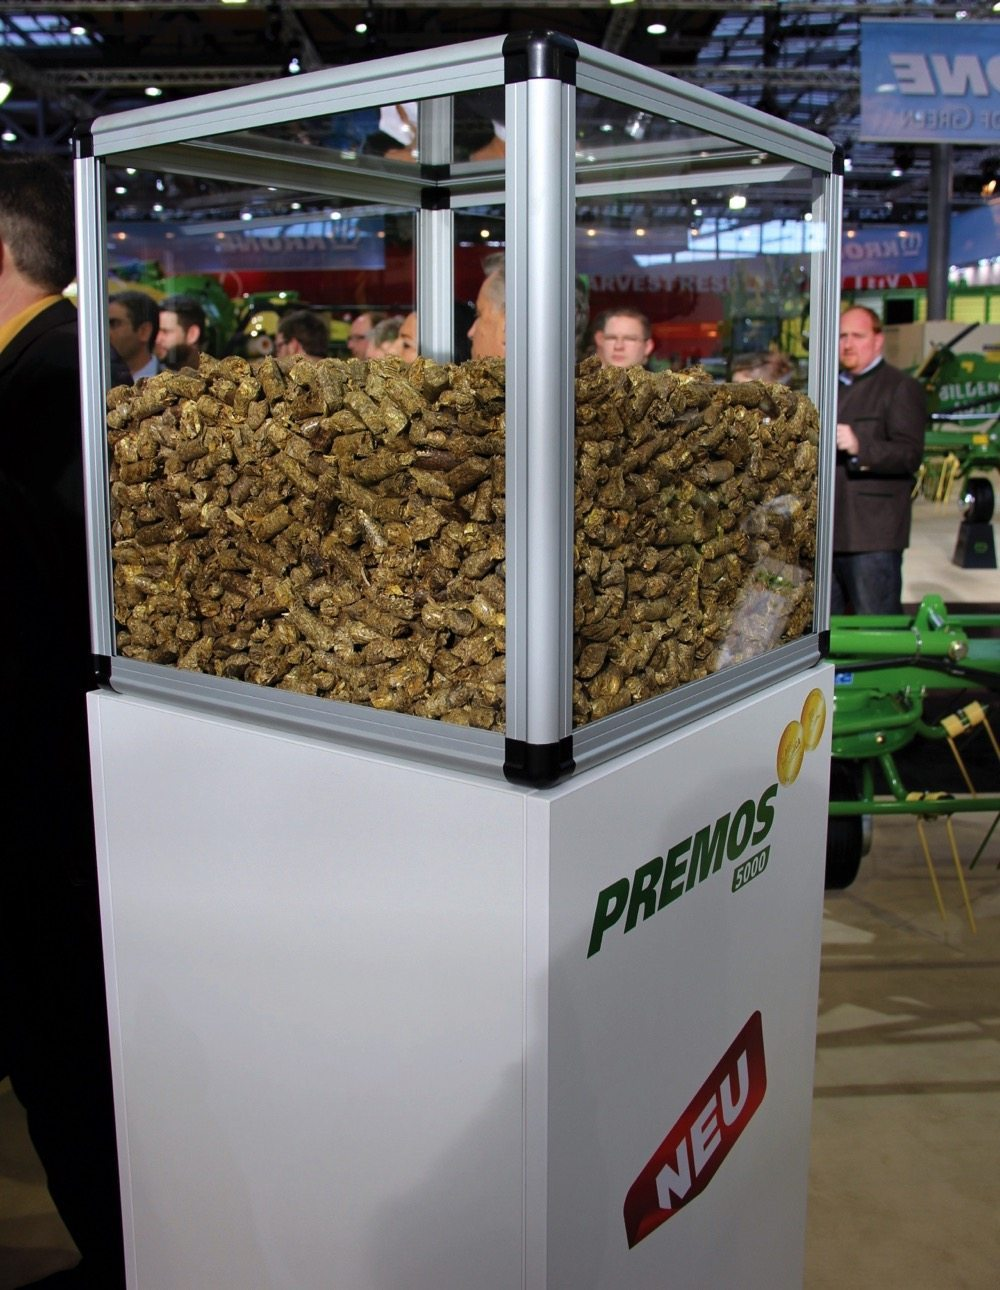 Krone displayed a glass case full of pellets made by the Premos 5000 at their Agritechnica exhibit.